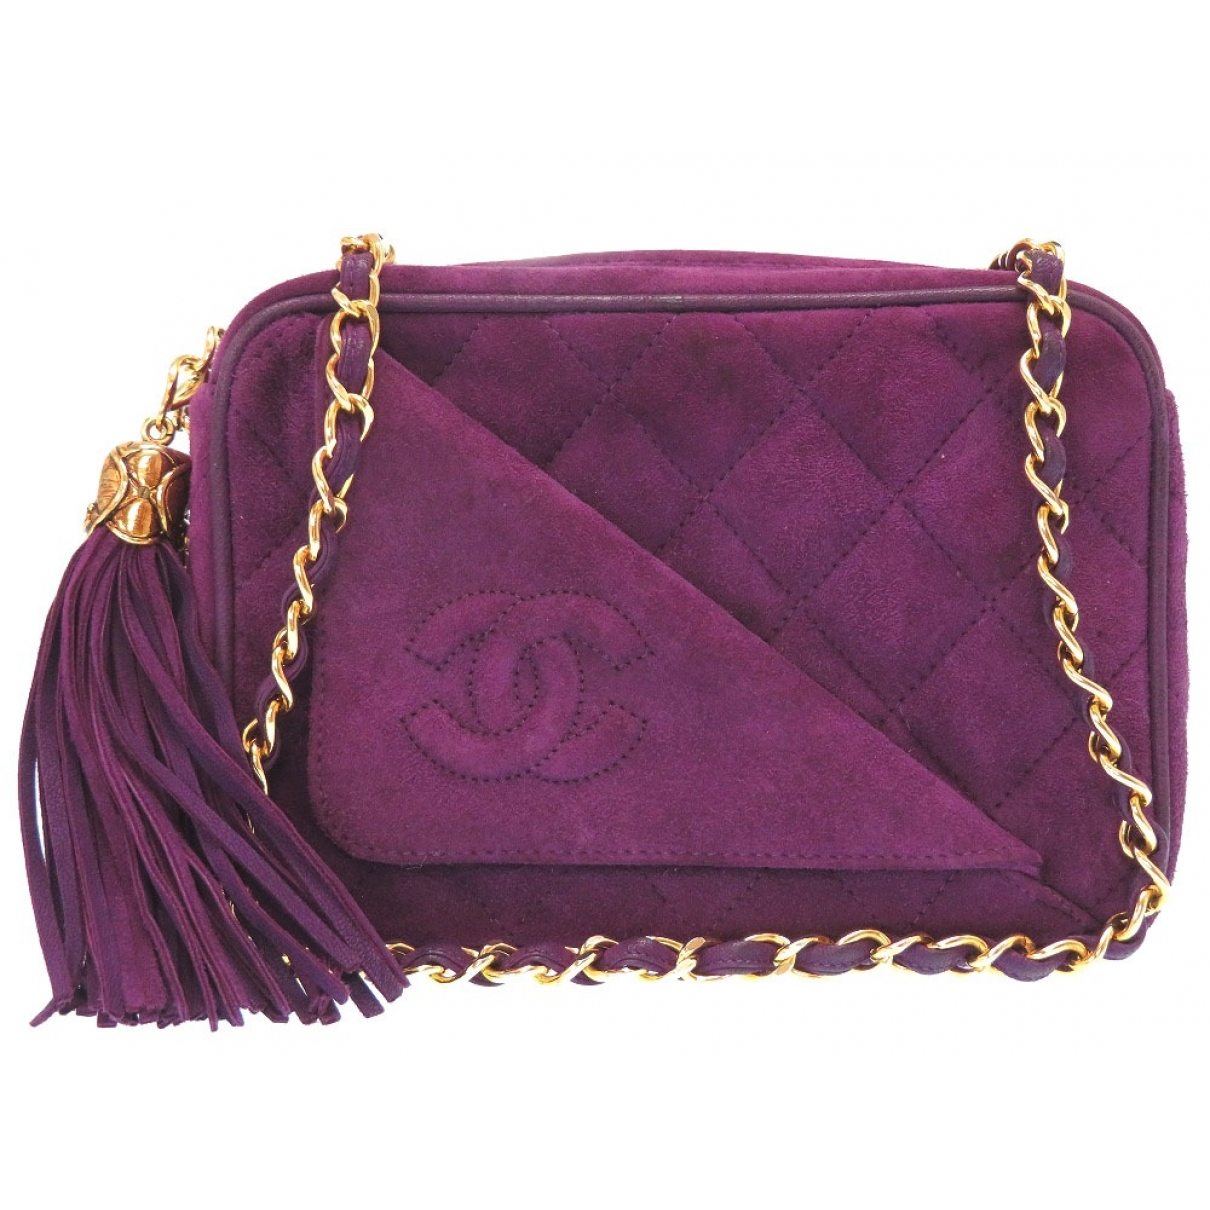 Chanel \N Purple Suede handbag for Women \N